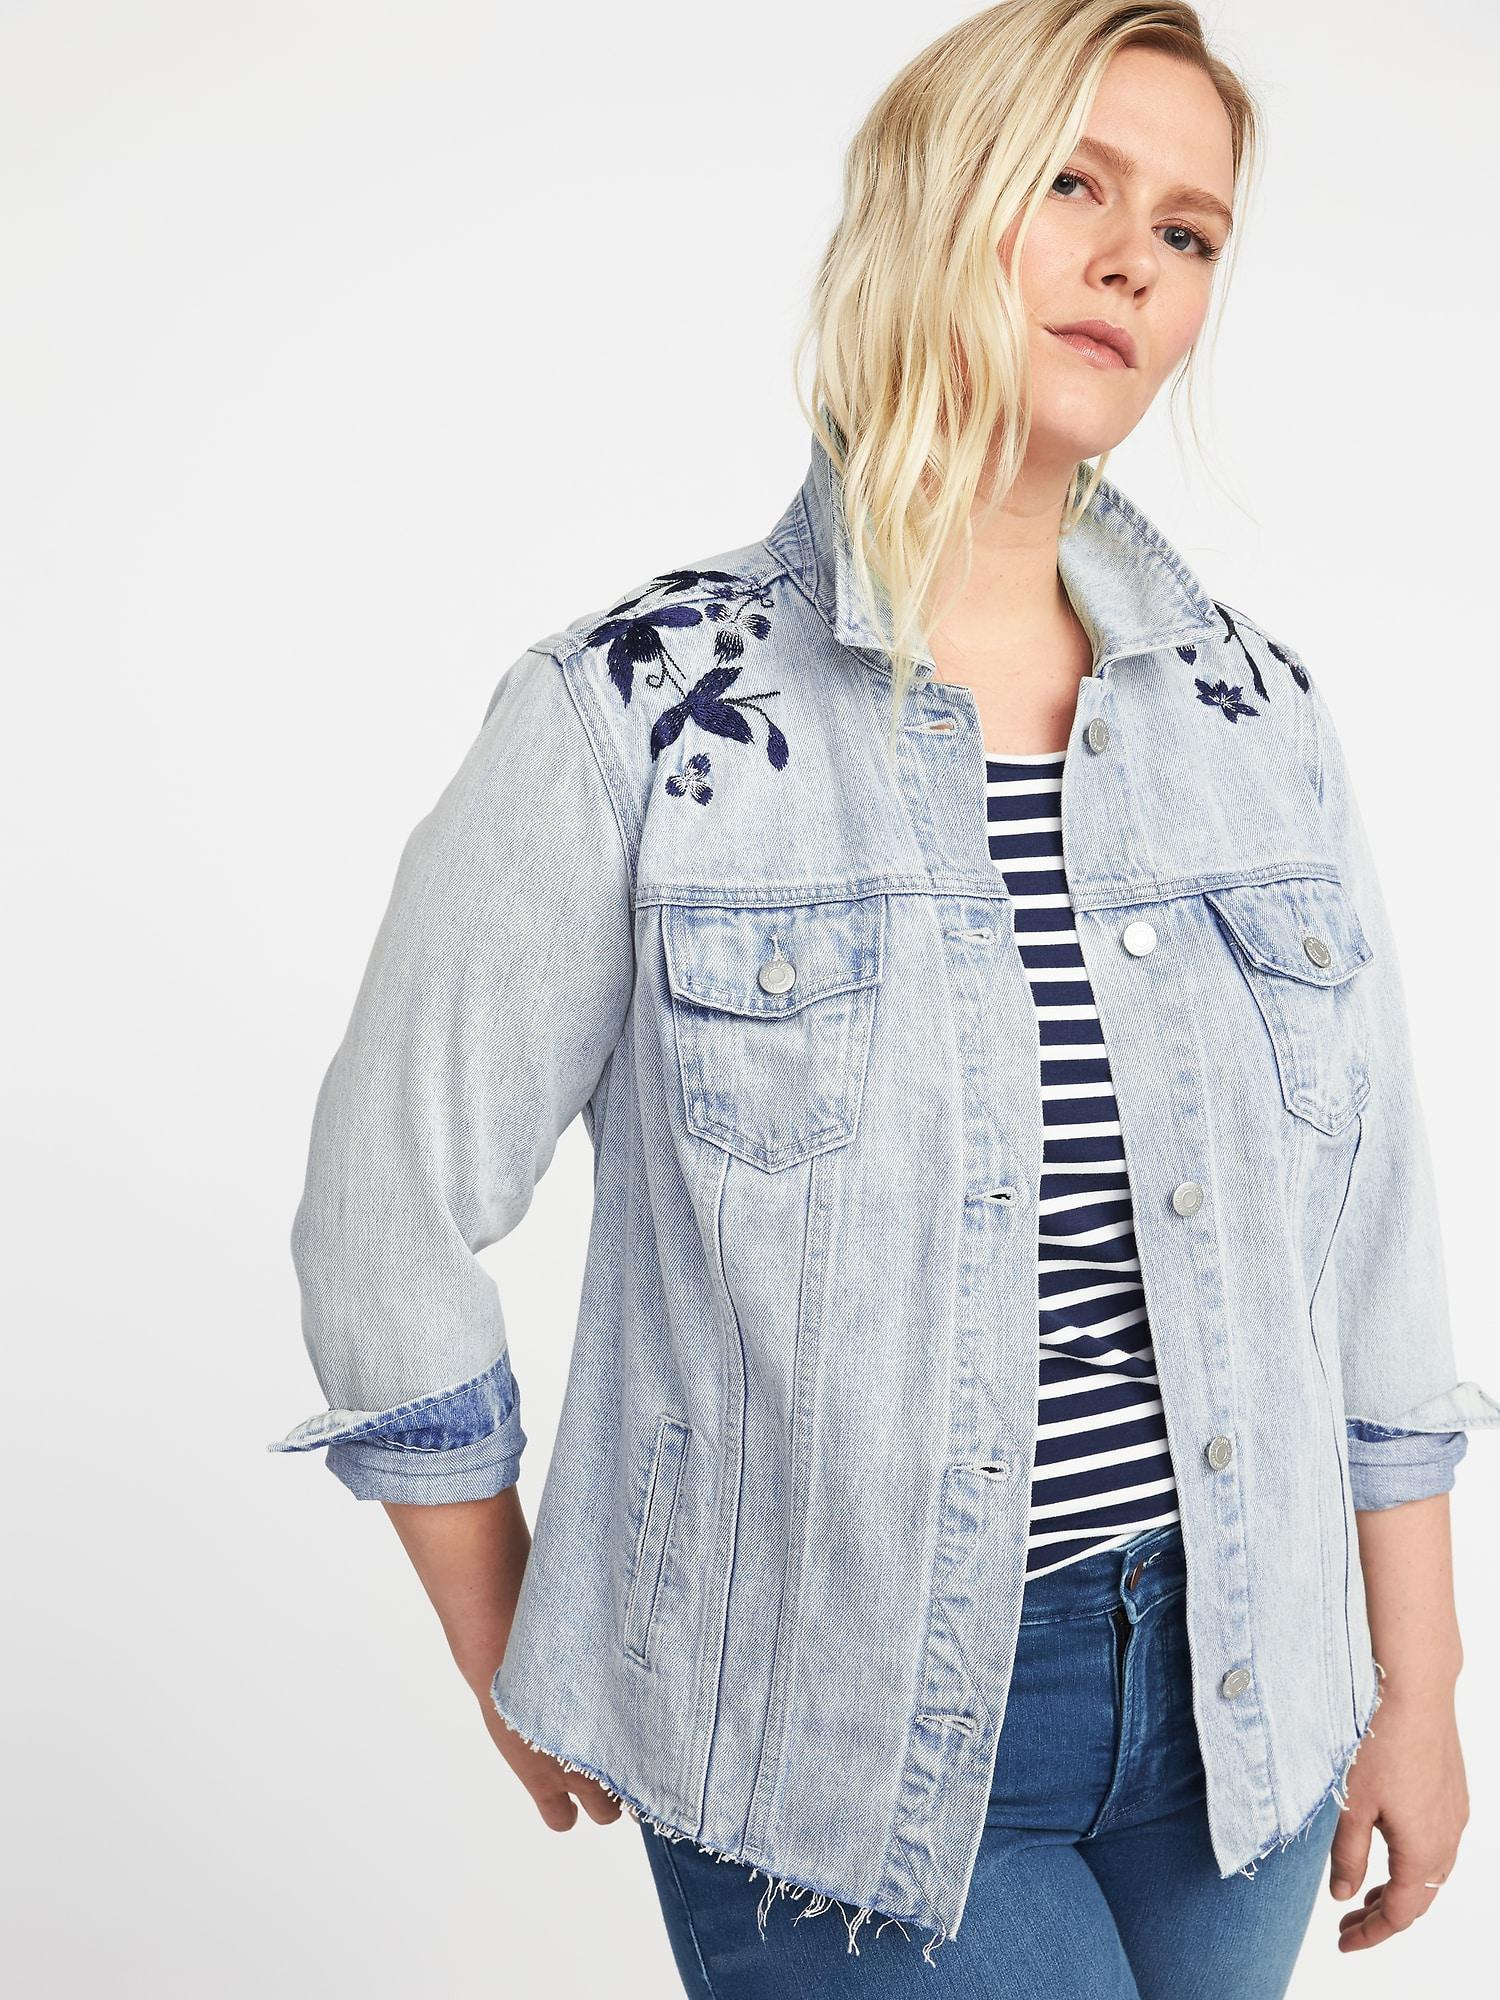 cab7e10c1a5 Lyst - Old Navy Plus-size Embroidered-graphic Denim Jacket in Blue